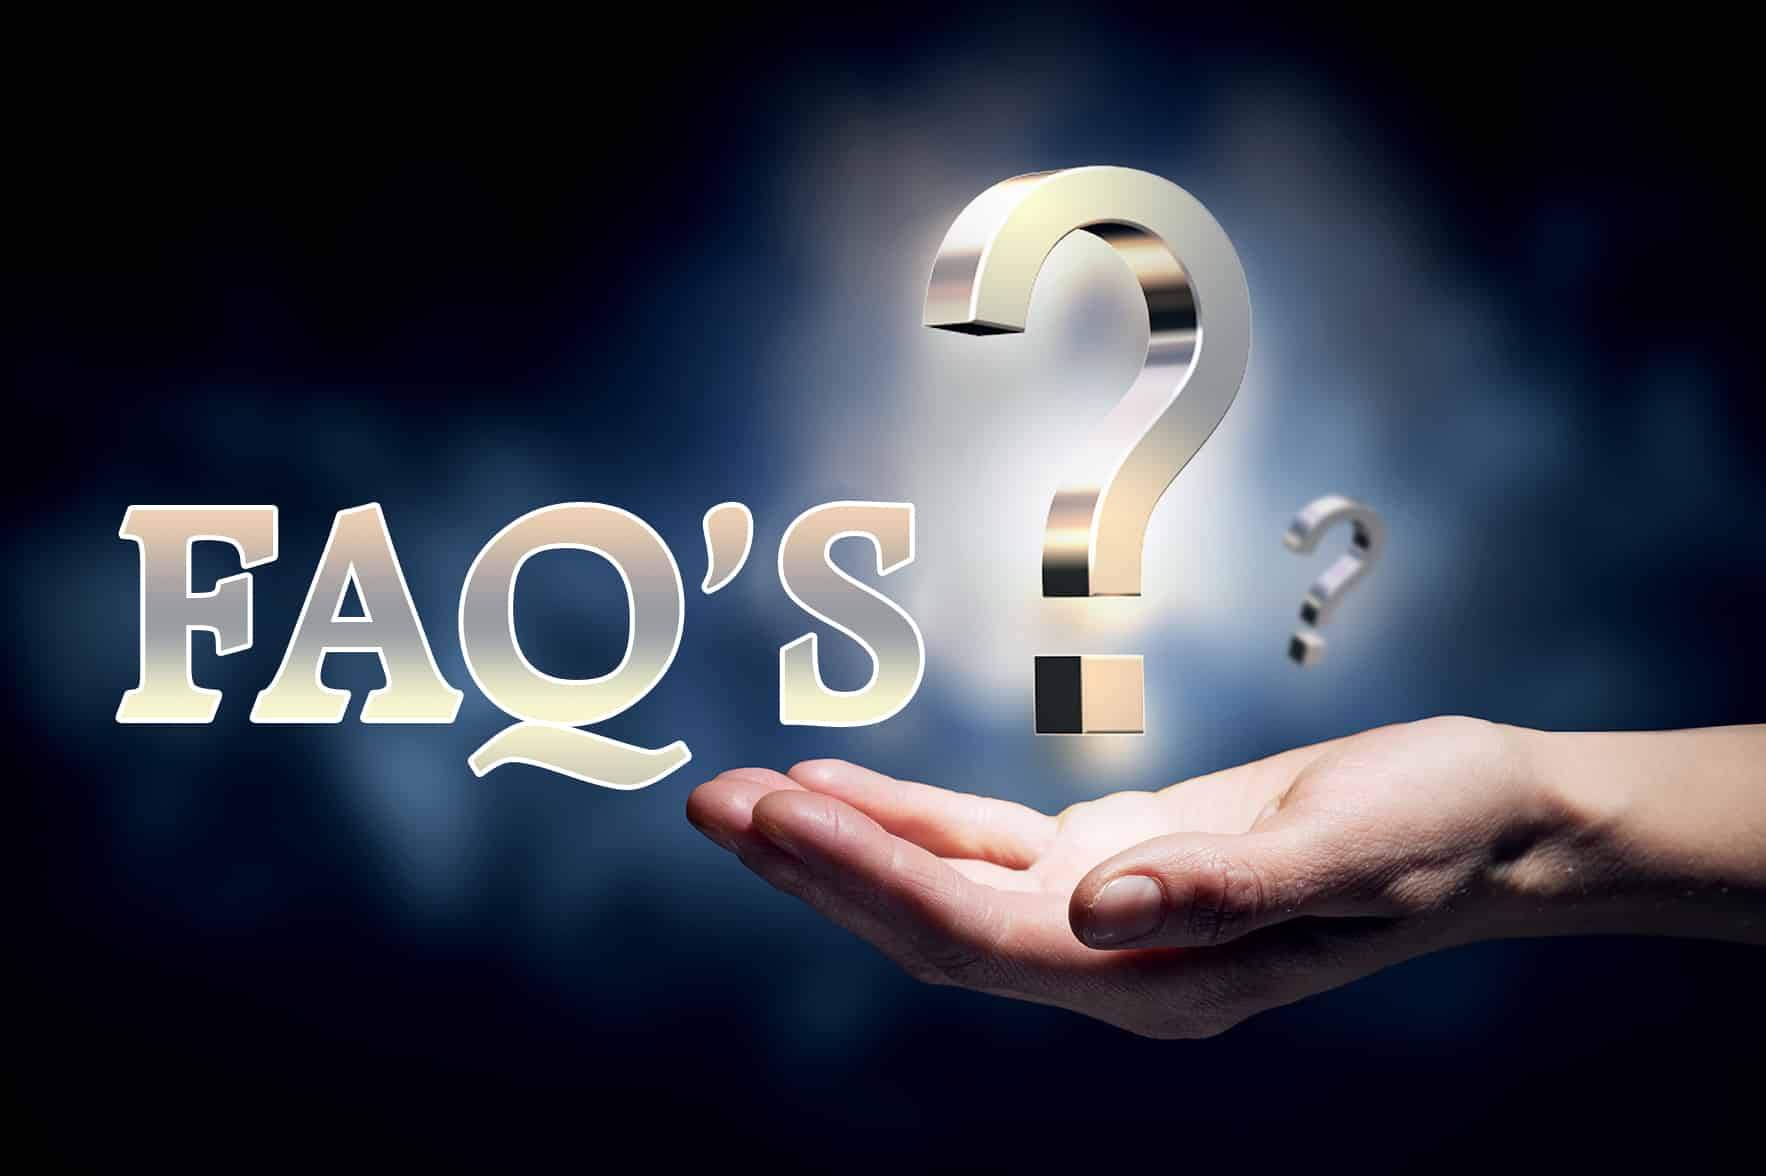 The easiest way to create a frequently asked questions faq an area for frequently asked questions can be an excellent way to provide help to visitors engage readers and improve your online reputation buycottarizona Gallery